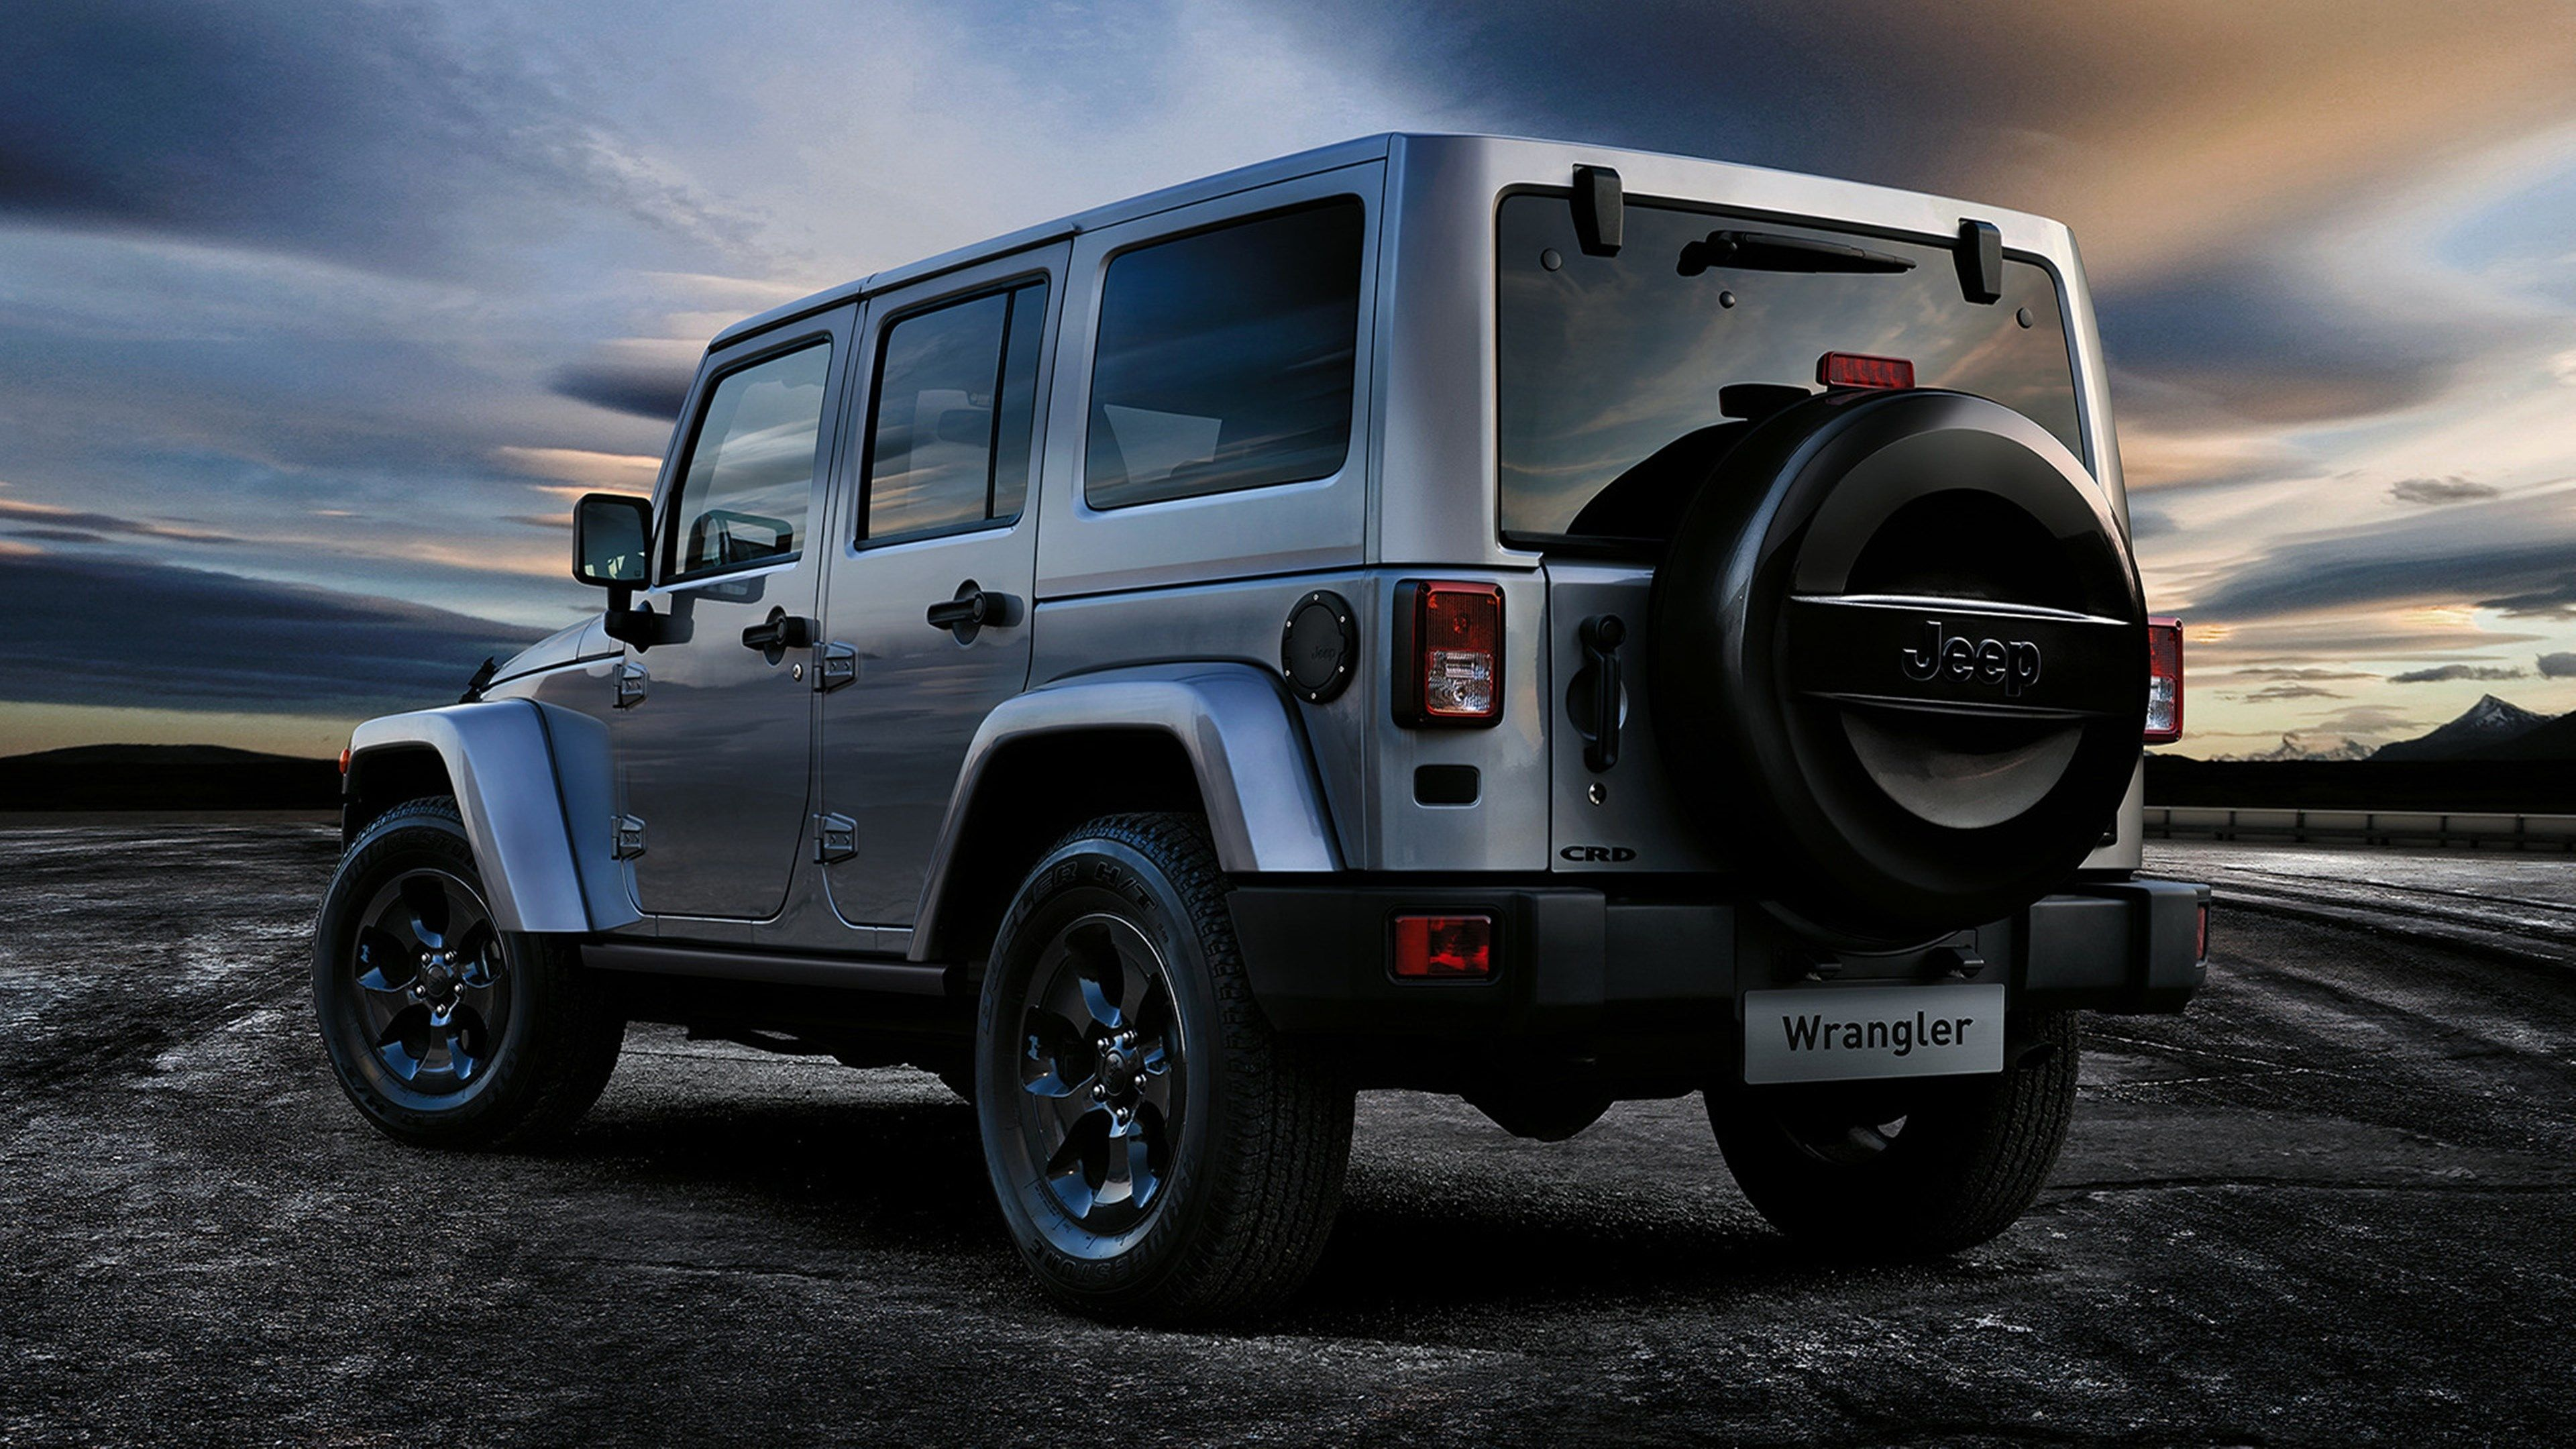 Free Screensaver Jeep Wrangler Pic 3840x2160 1195 Kb Jeep Wrangler Tire Covers Jeep Suv New Jeep Wrangler